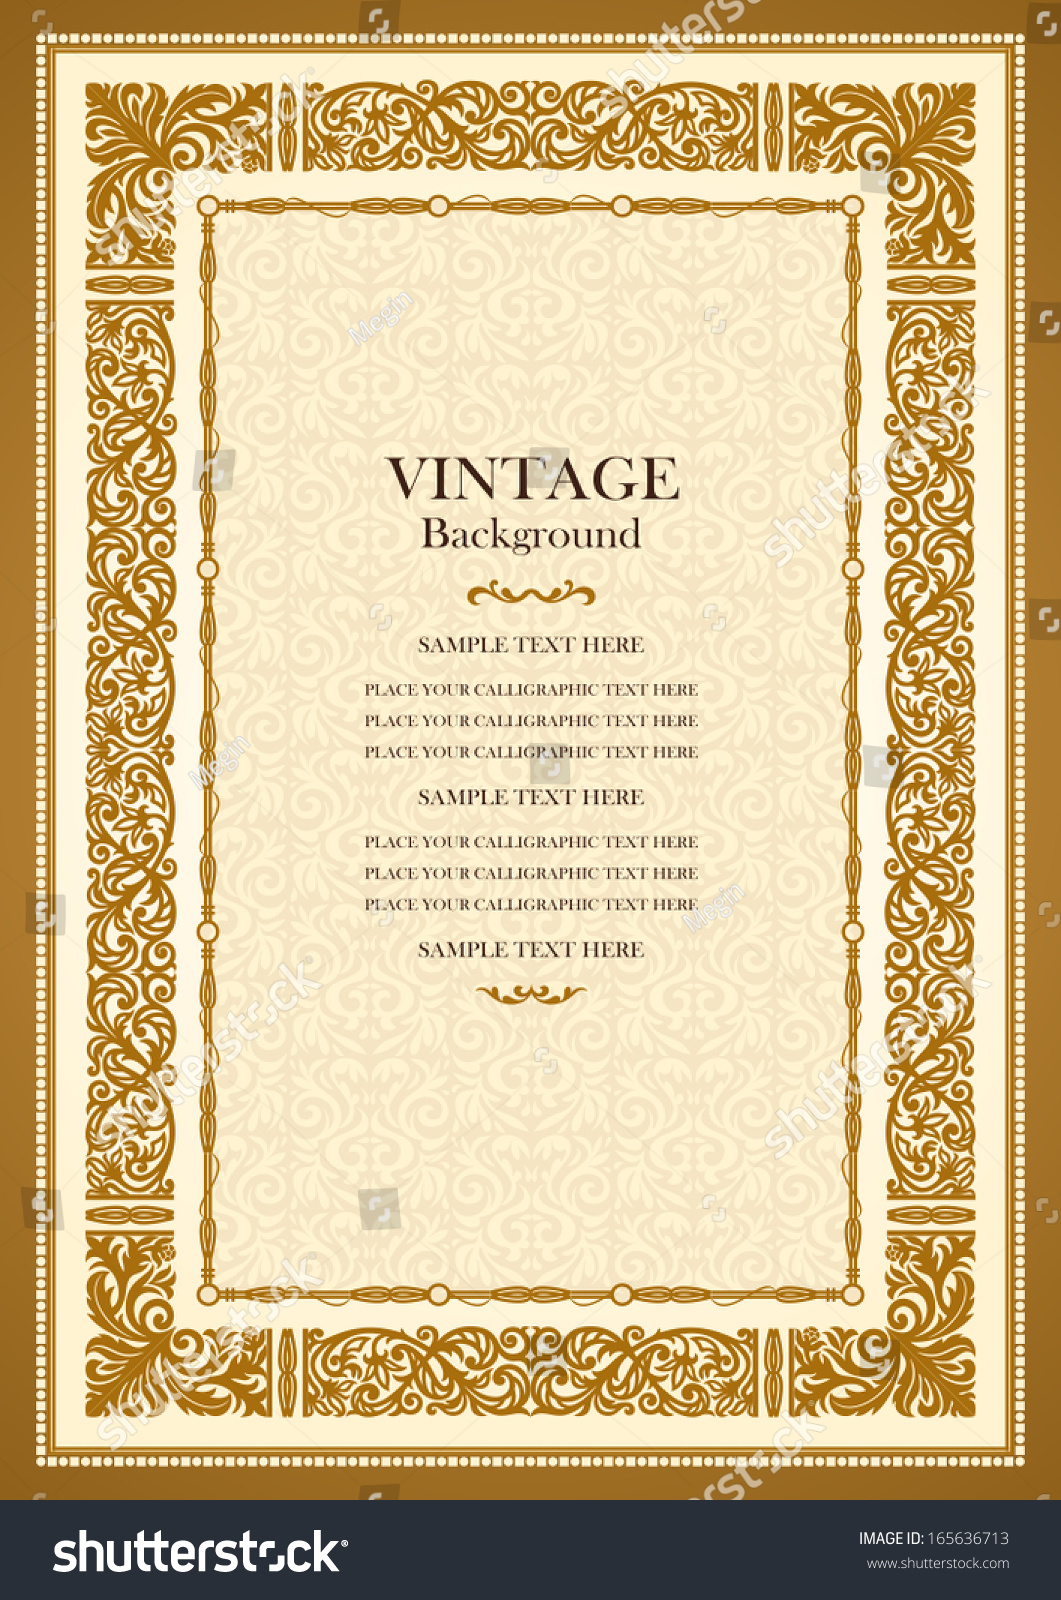 Vintage Gold Background Antique Style Frame Stock Vector ...